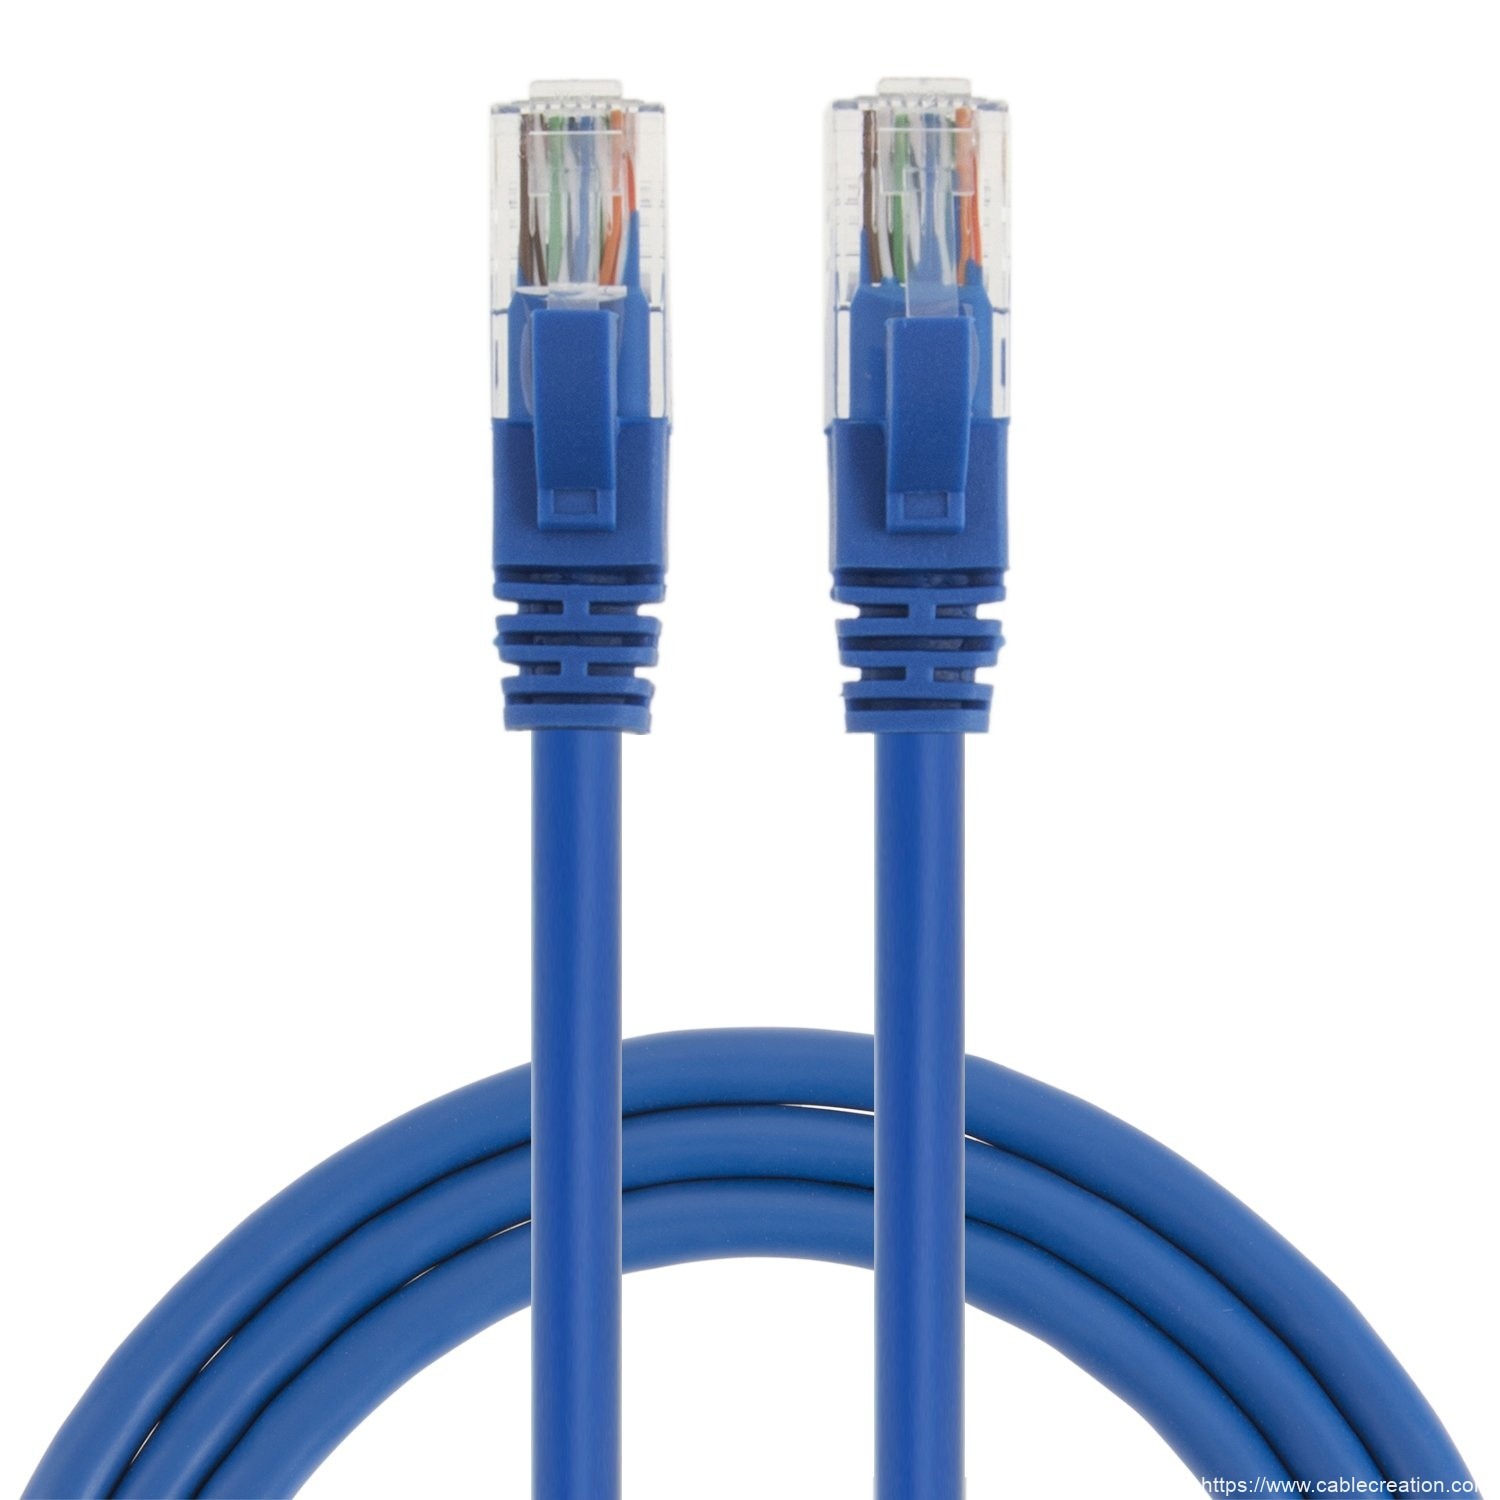 Good quality Network Cable Left Angel - CAT6 Ethernet Cable 3Feet/0.9Meters, #CL0131 – CableCreation